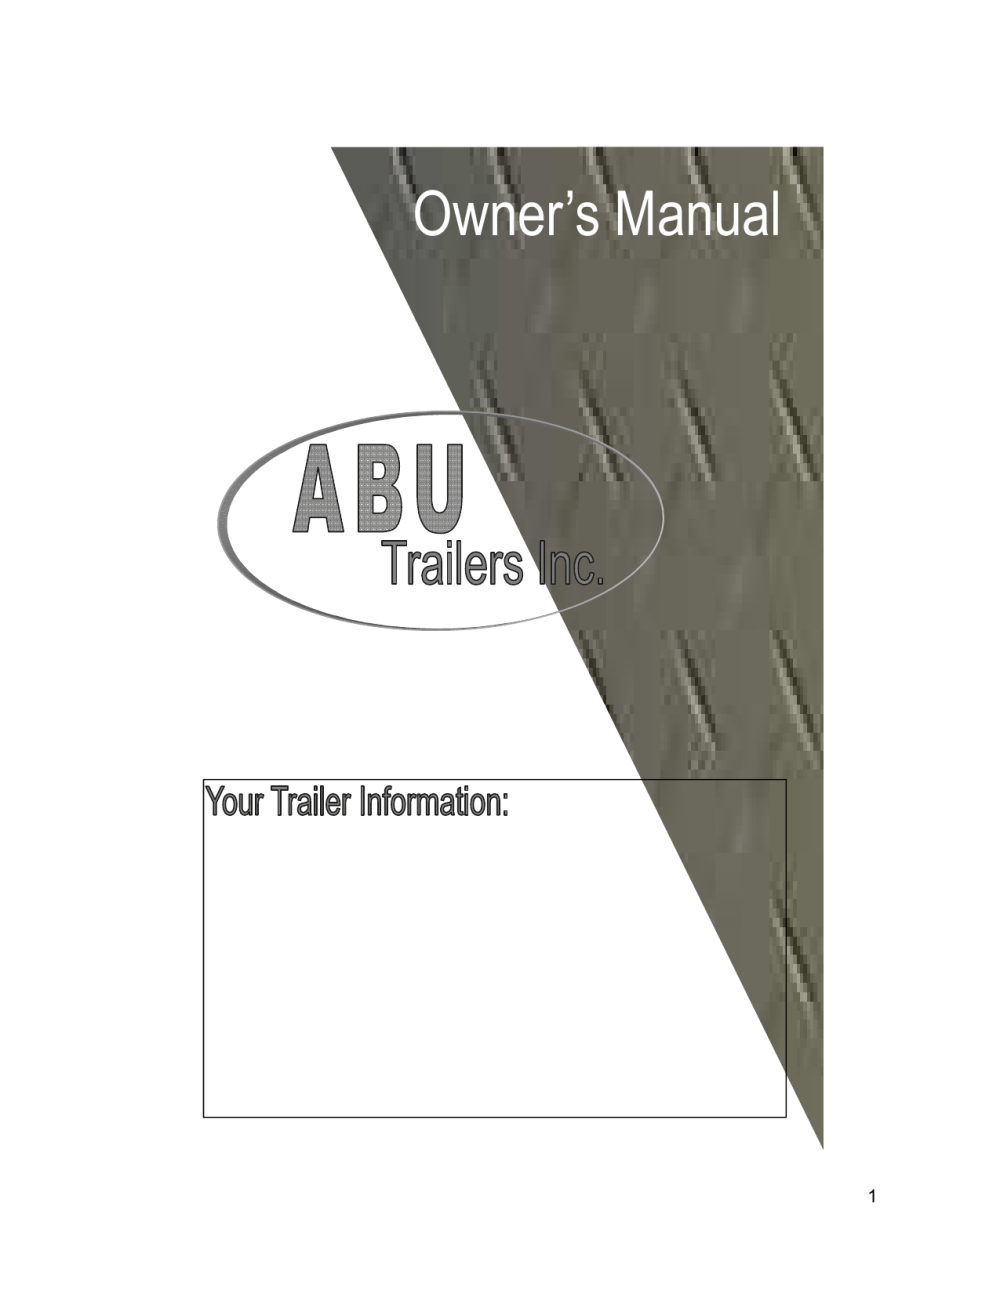 medium resolution of abu trailers inc owner s manual